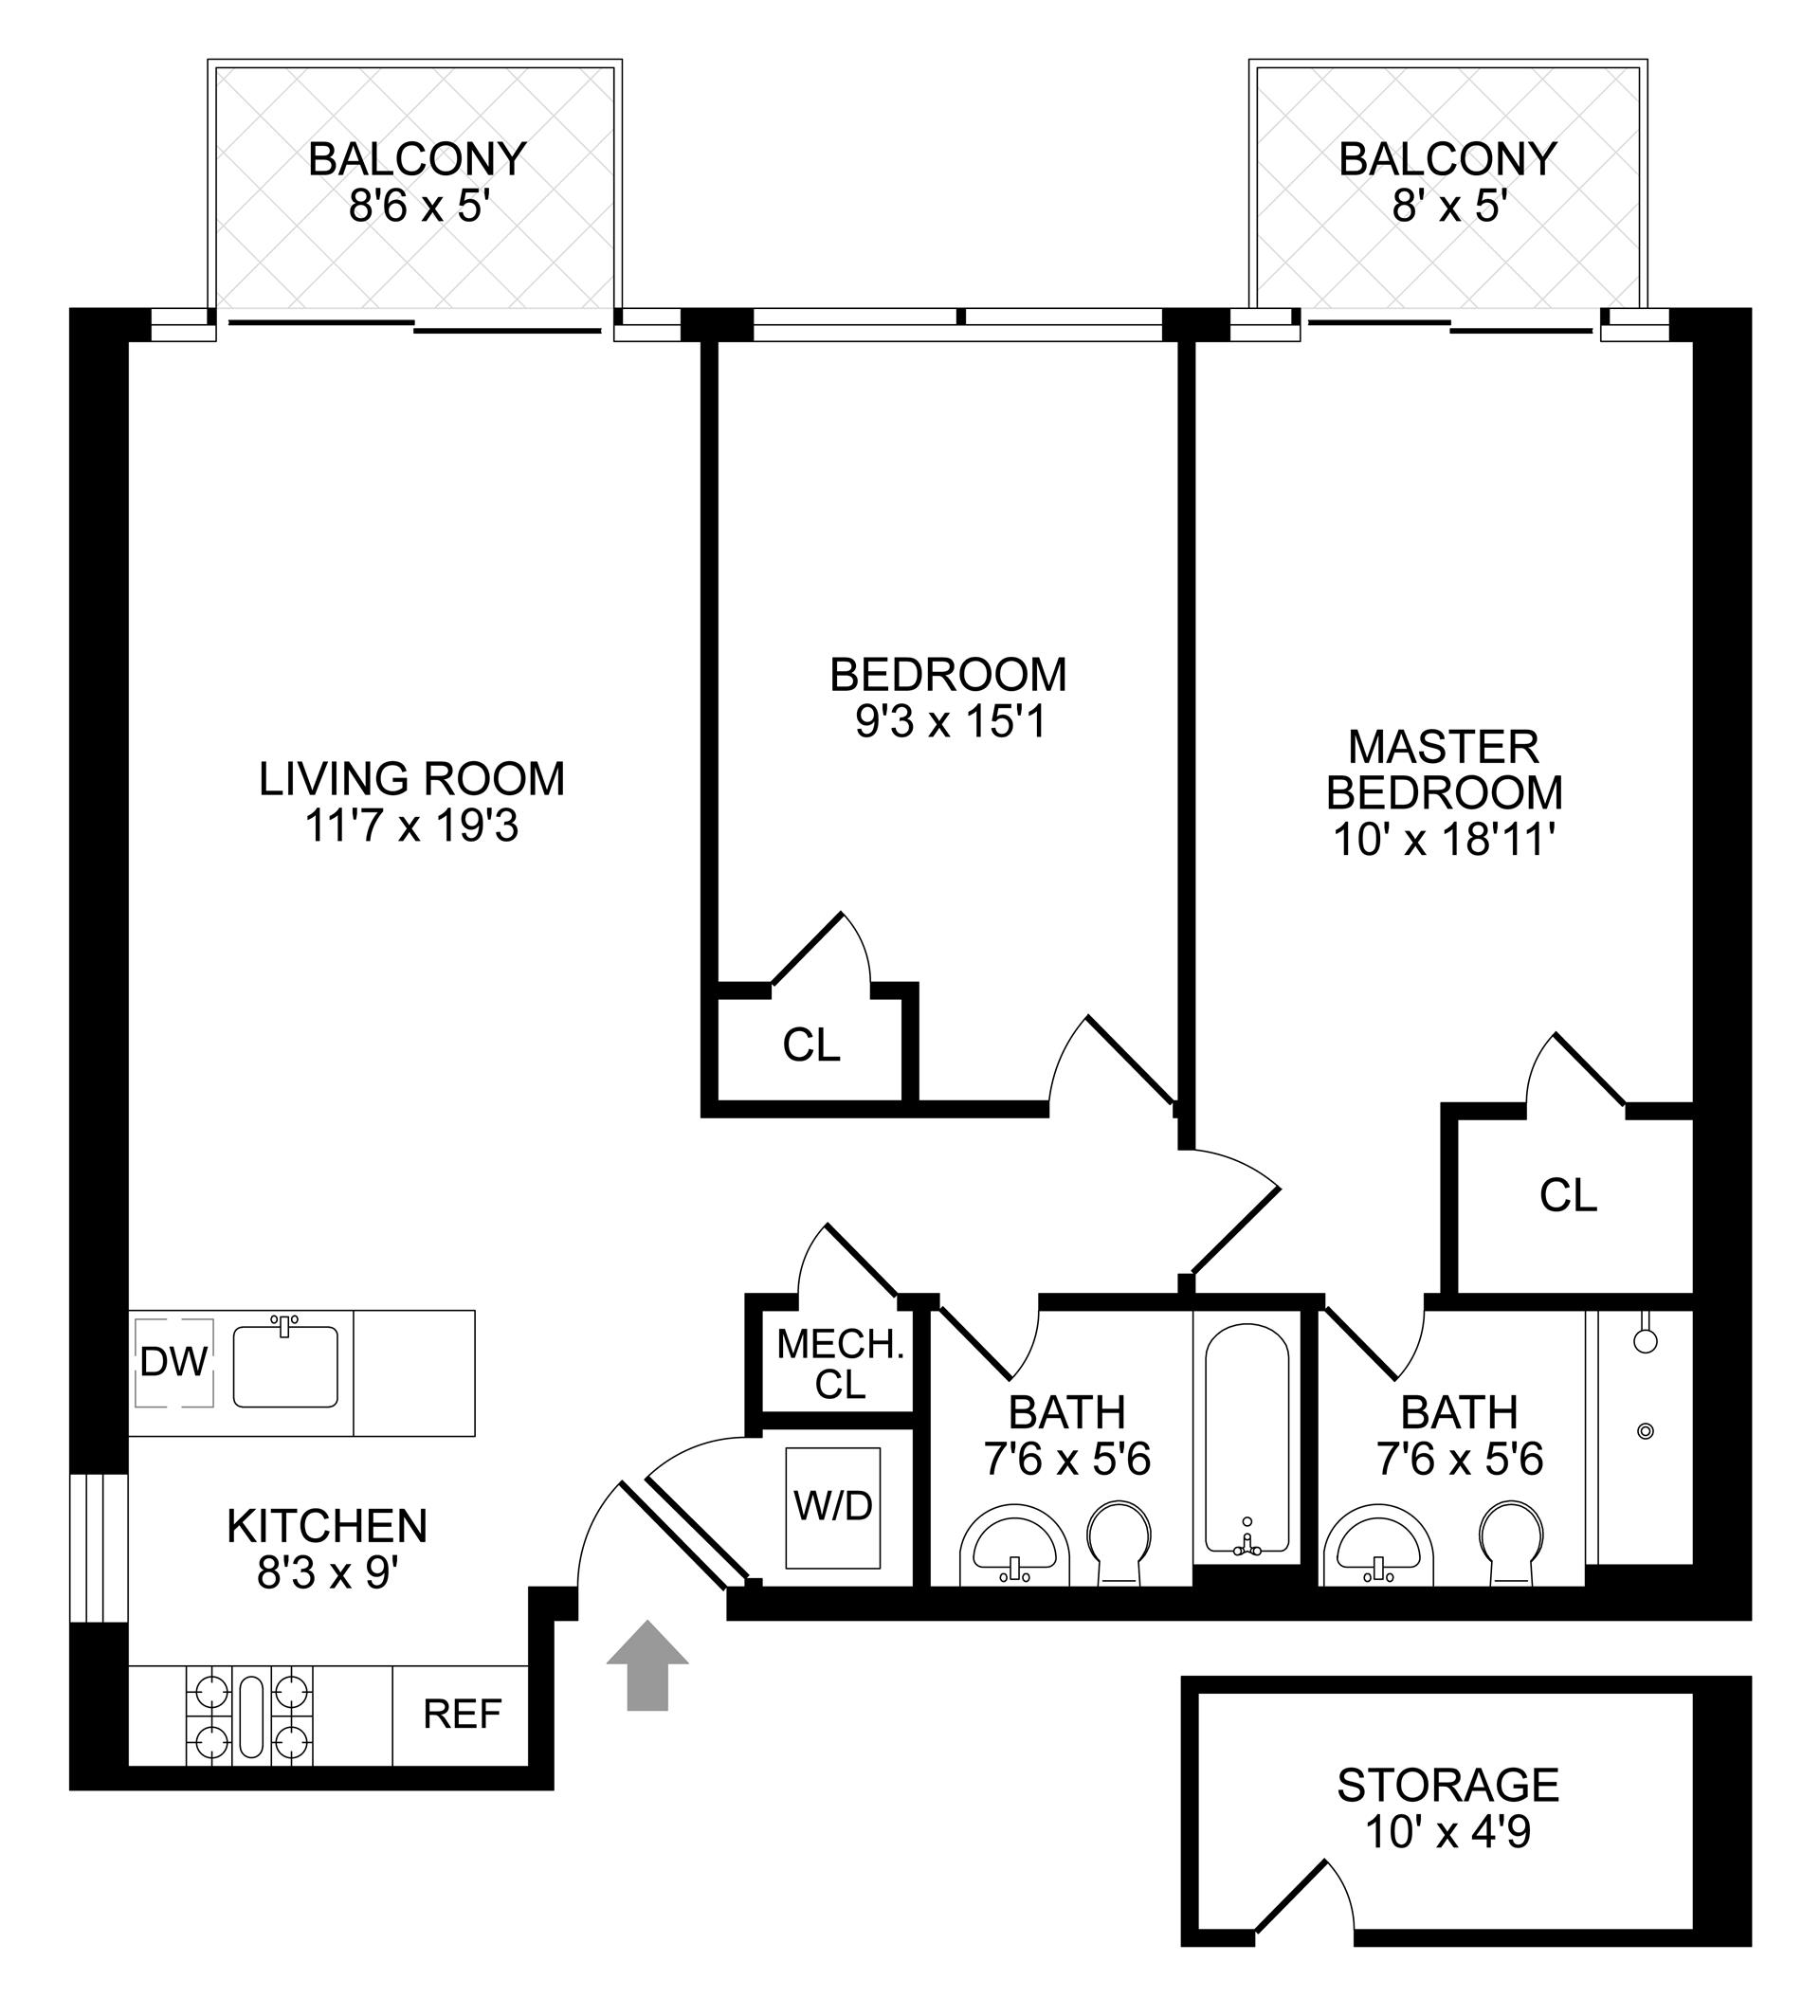 Floor plan of 854 Putnam Avenue, 3B - Stuyvesant Heights, New York